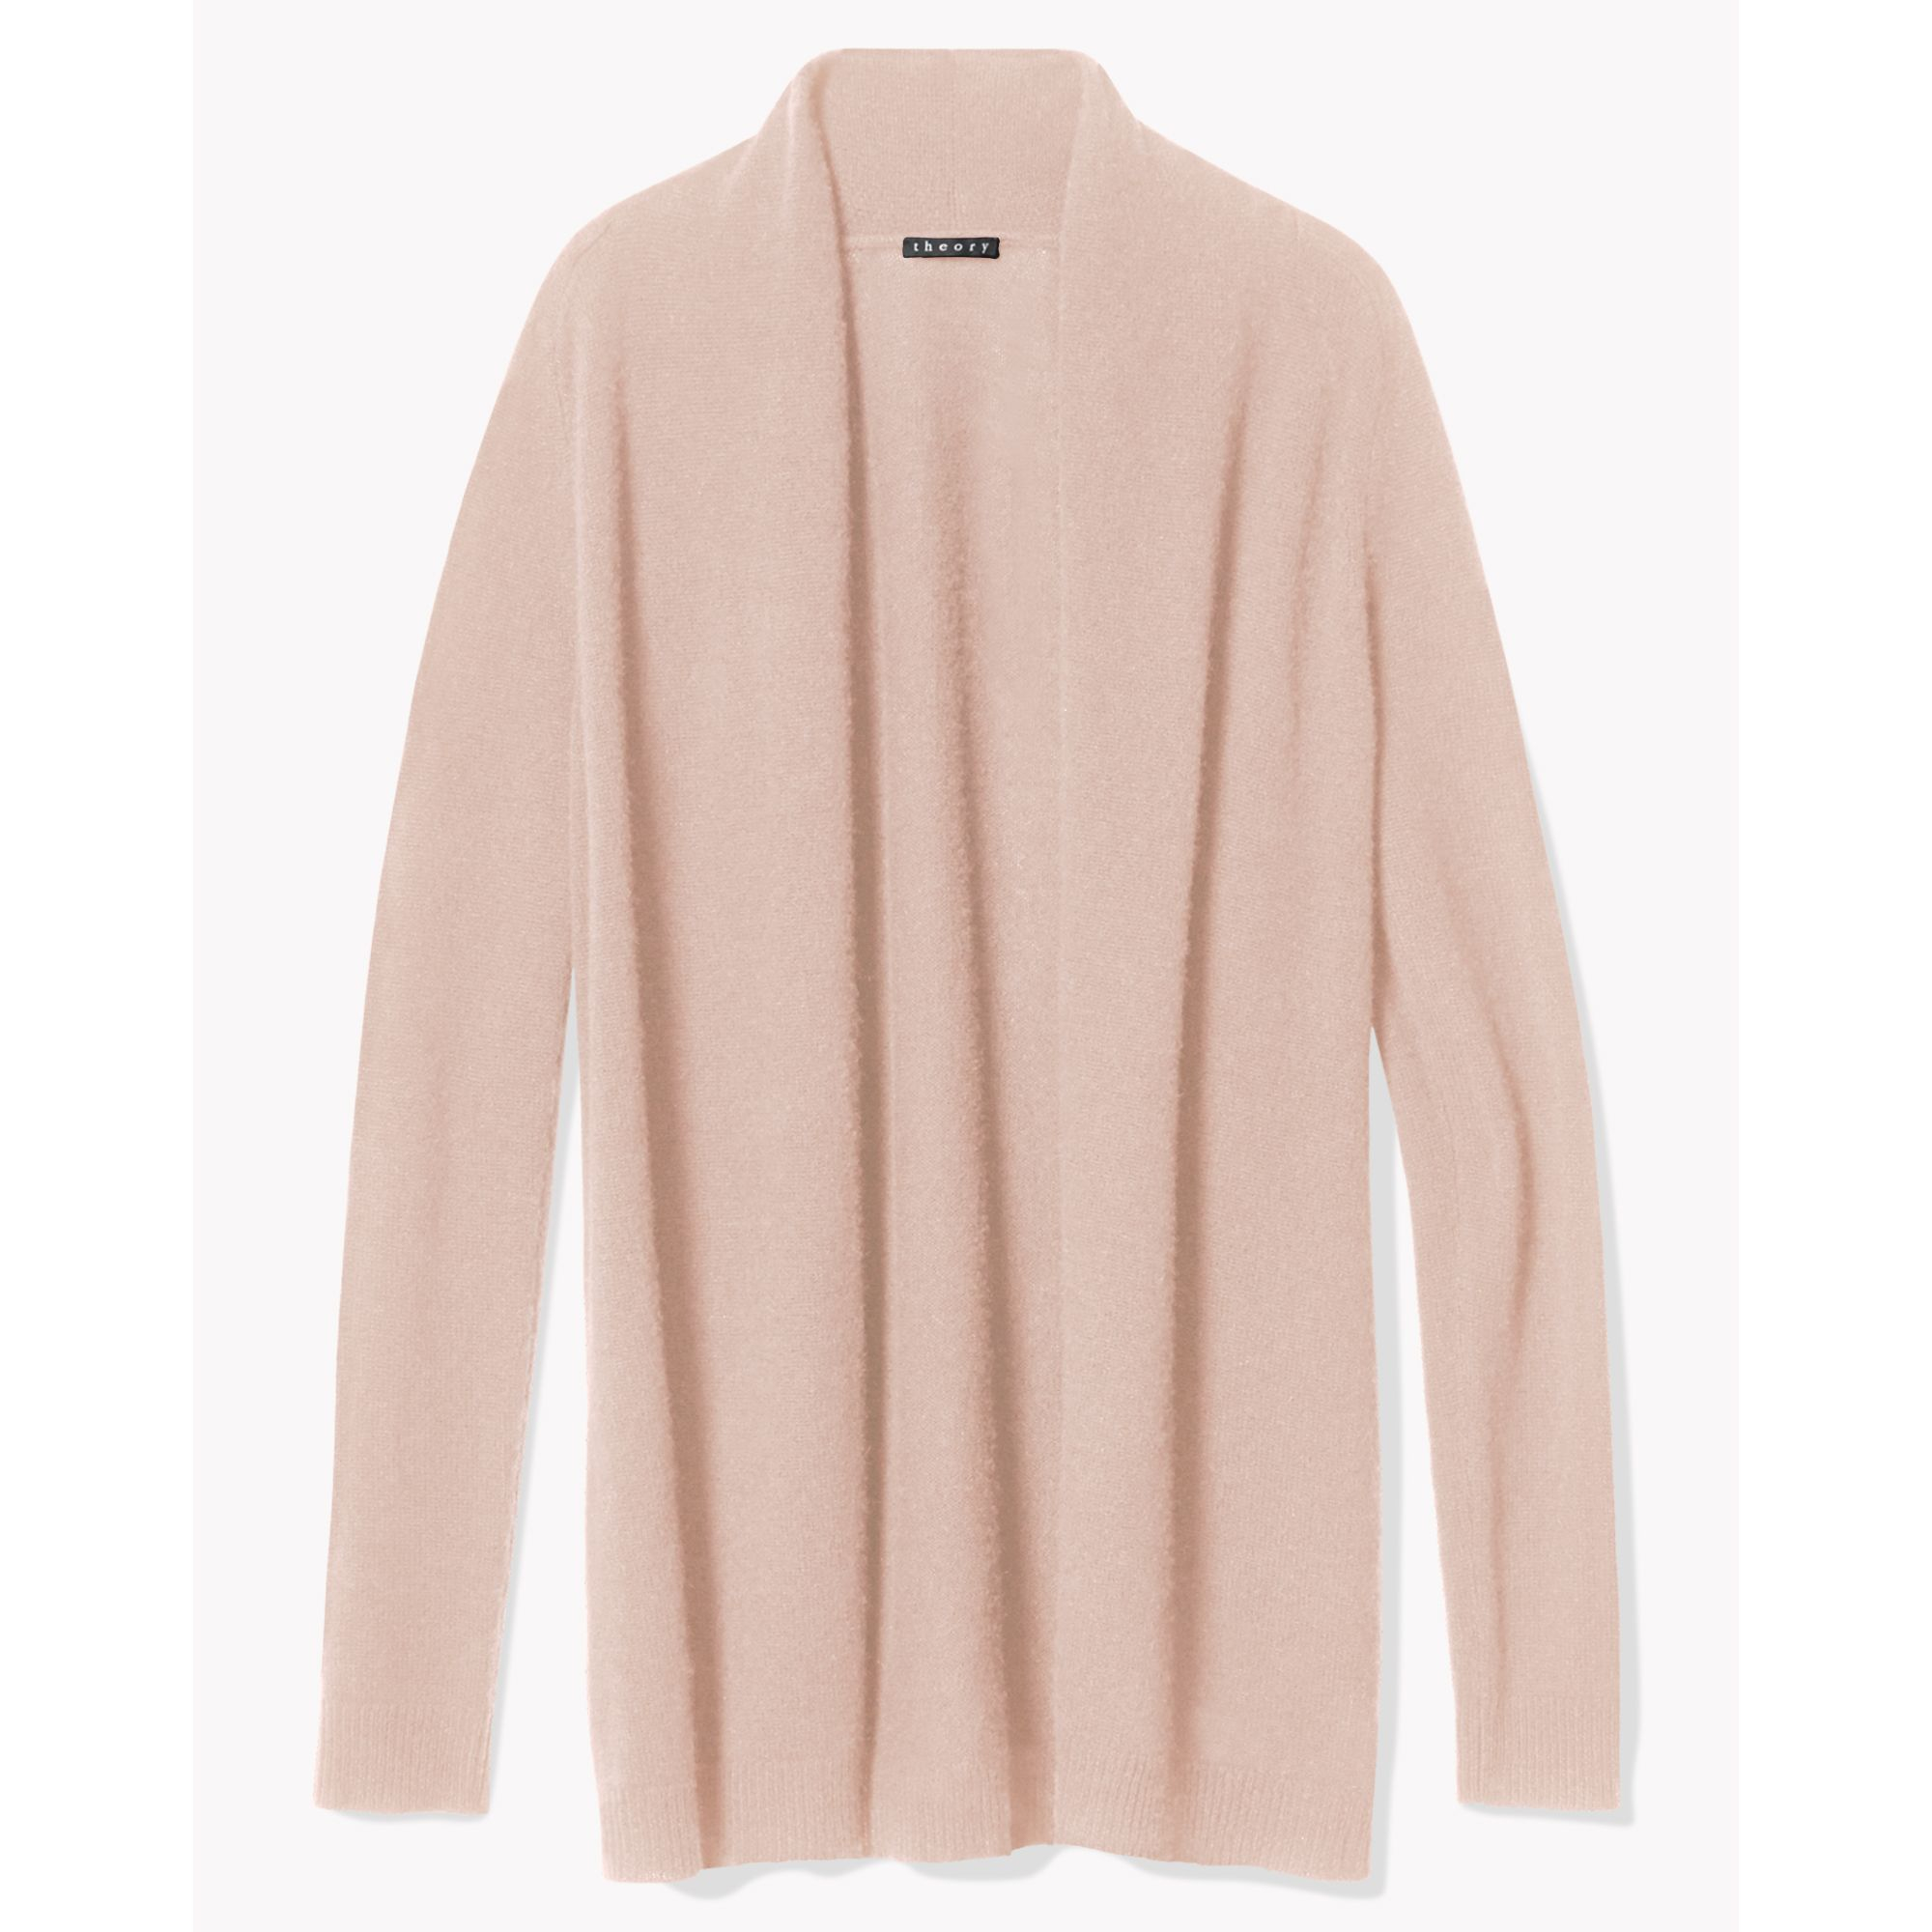 Lyst - Theory Feather Cashmere Open Cardigan in Pink bd3312f50